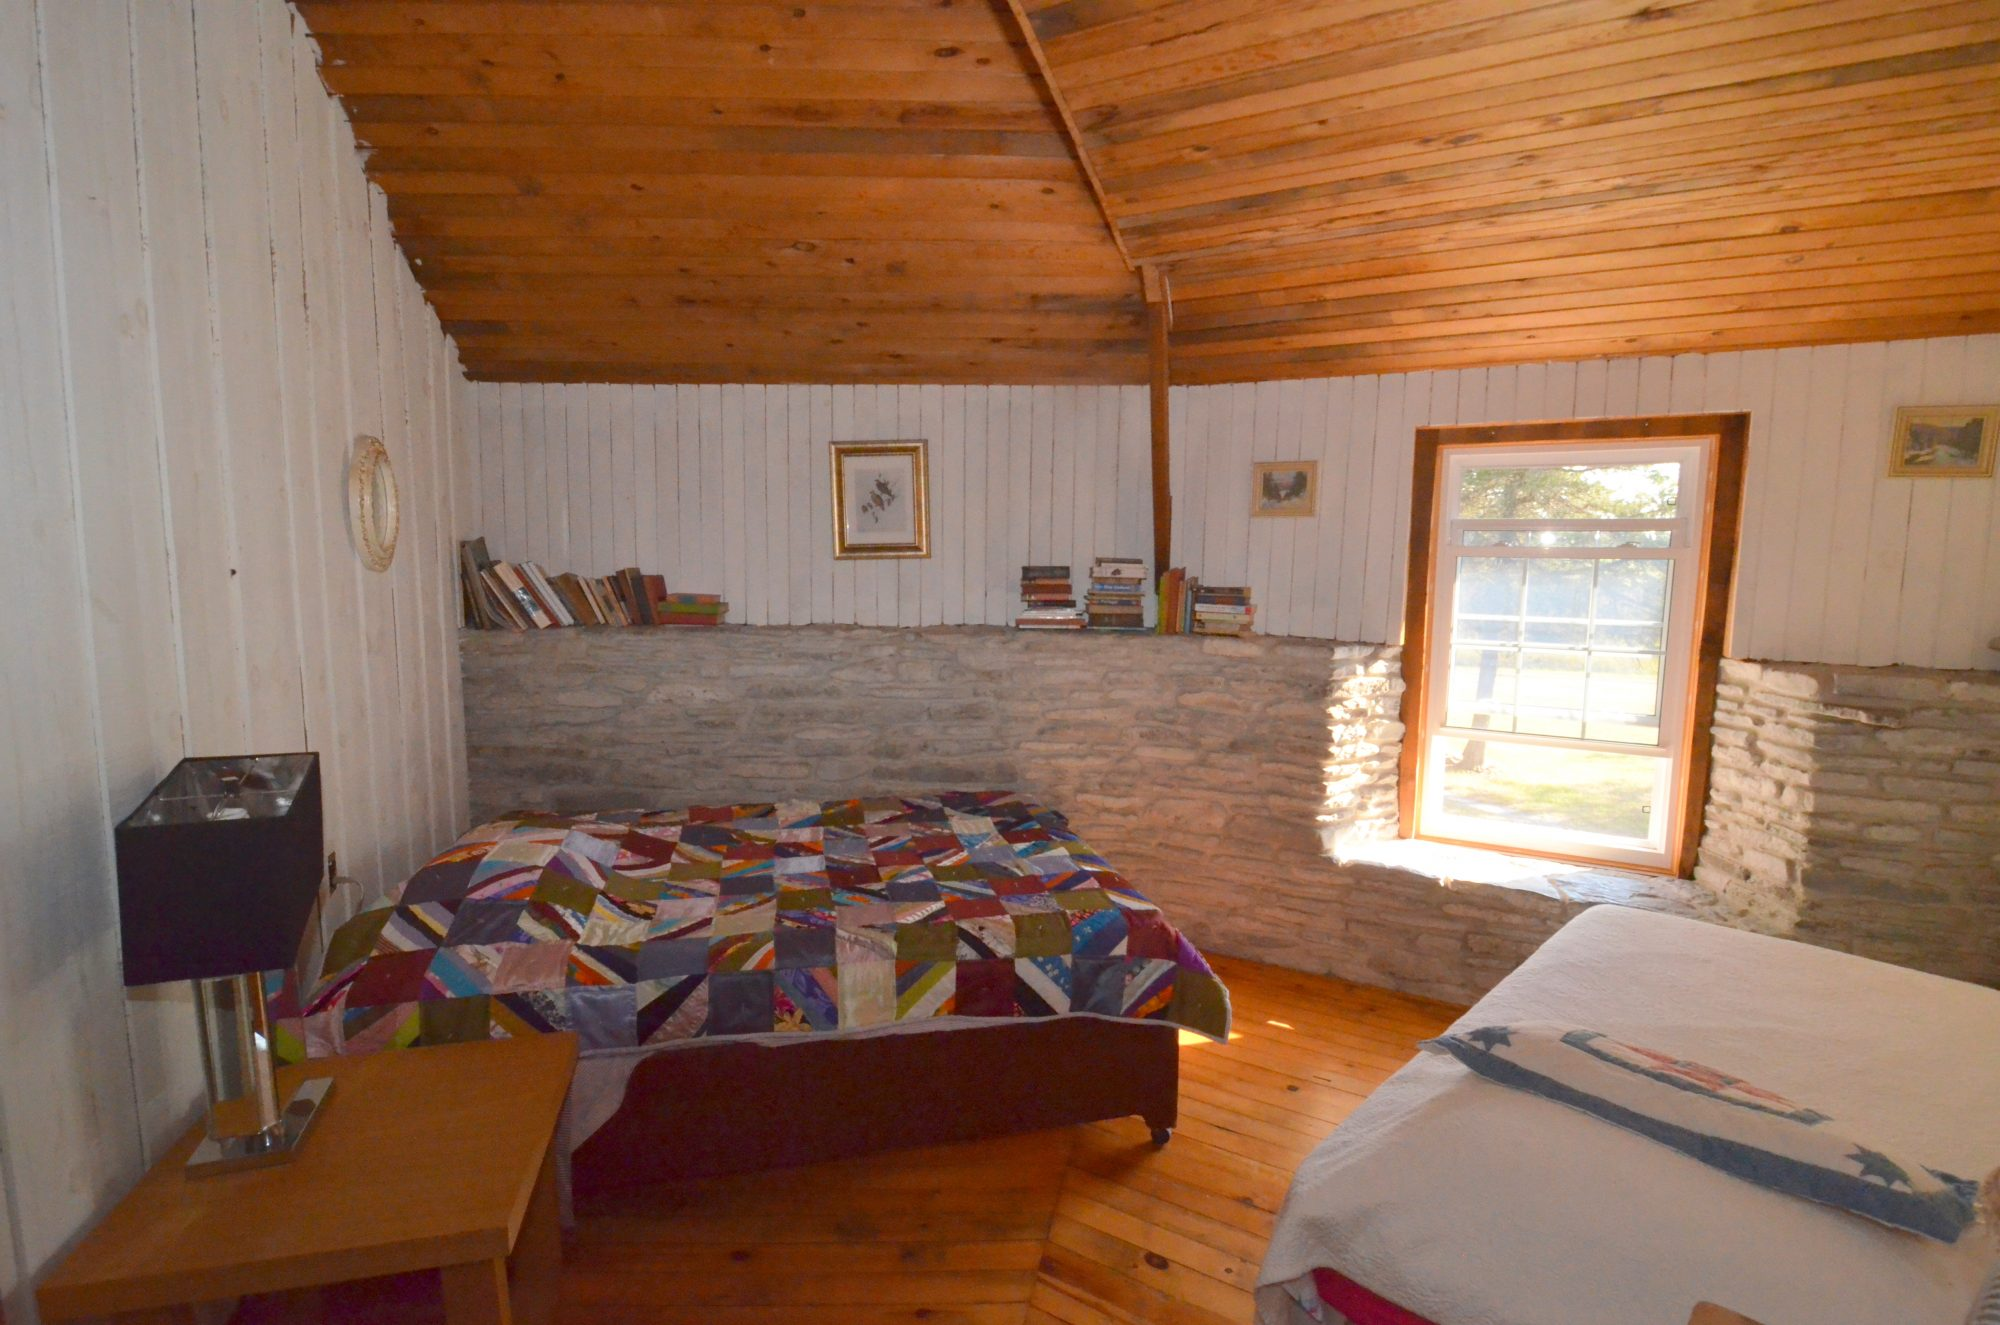 amherst-island-cottage-for-sale-9350-second-concession-road-5